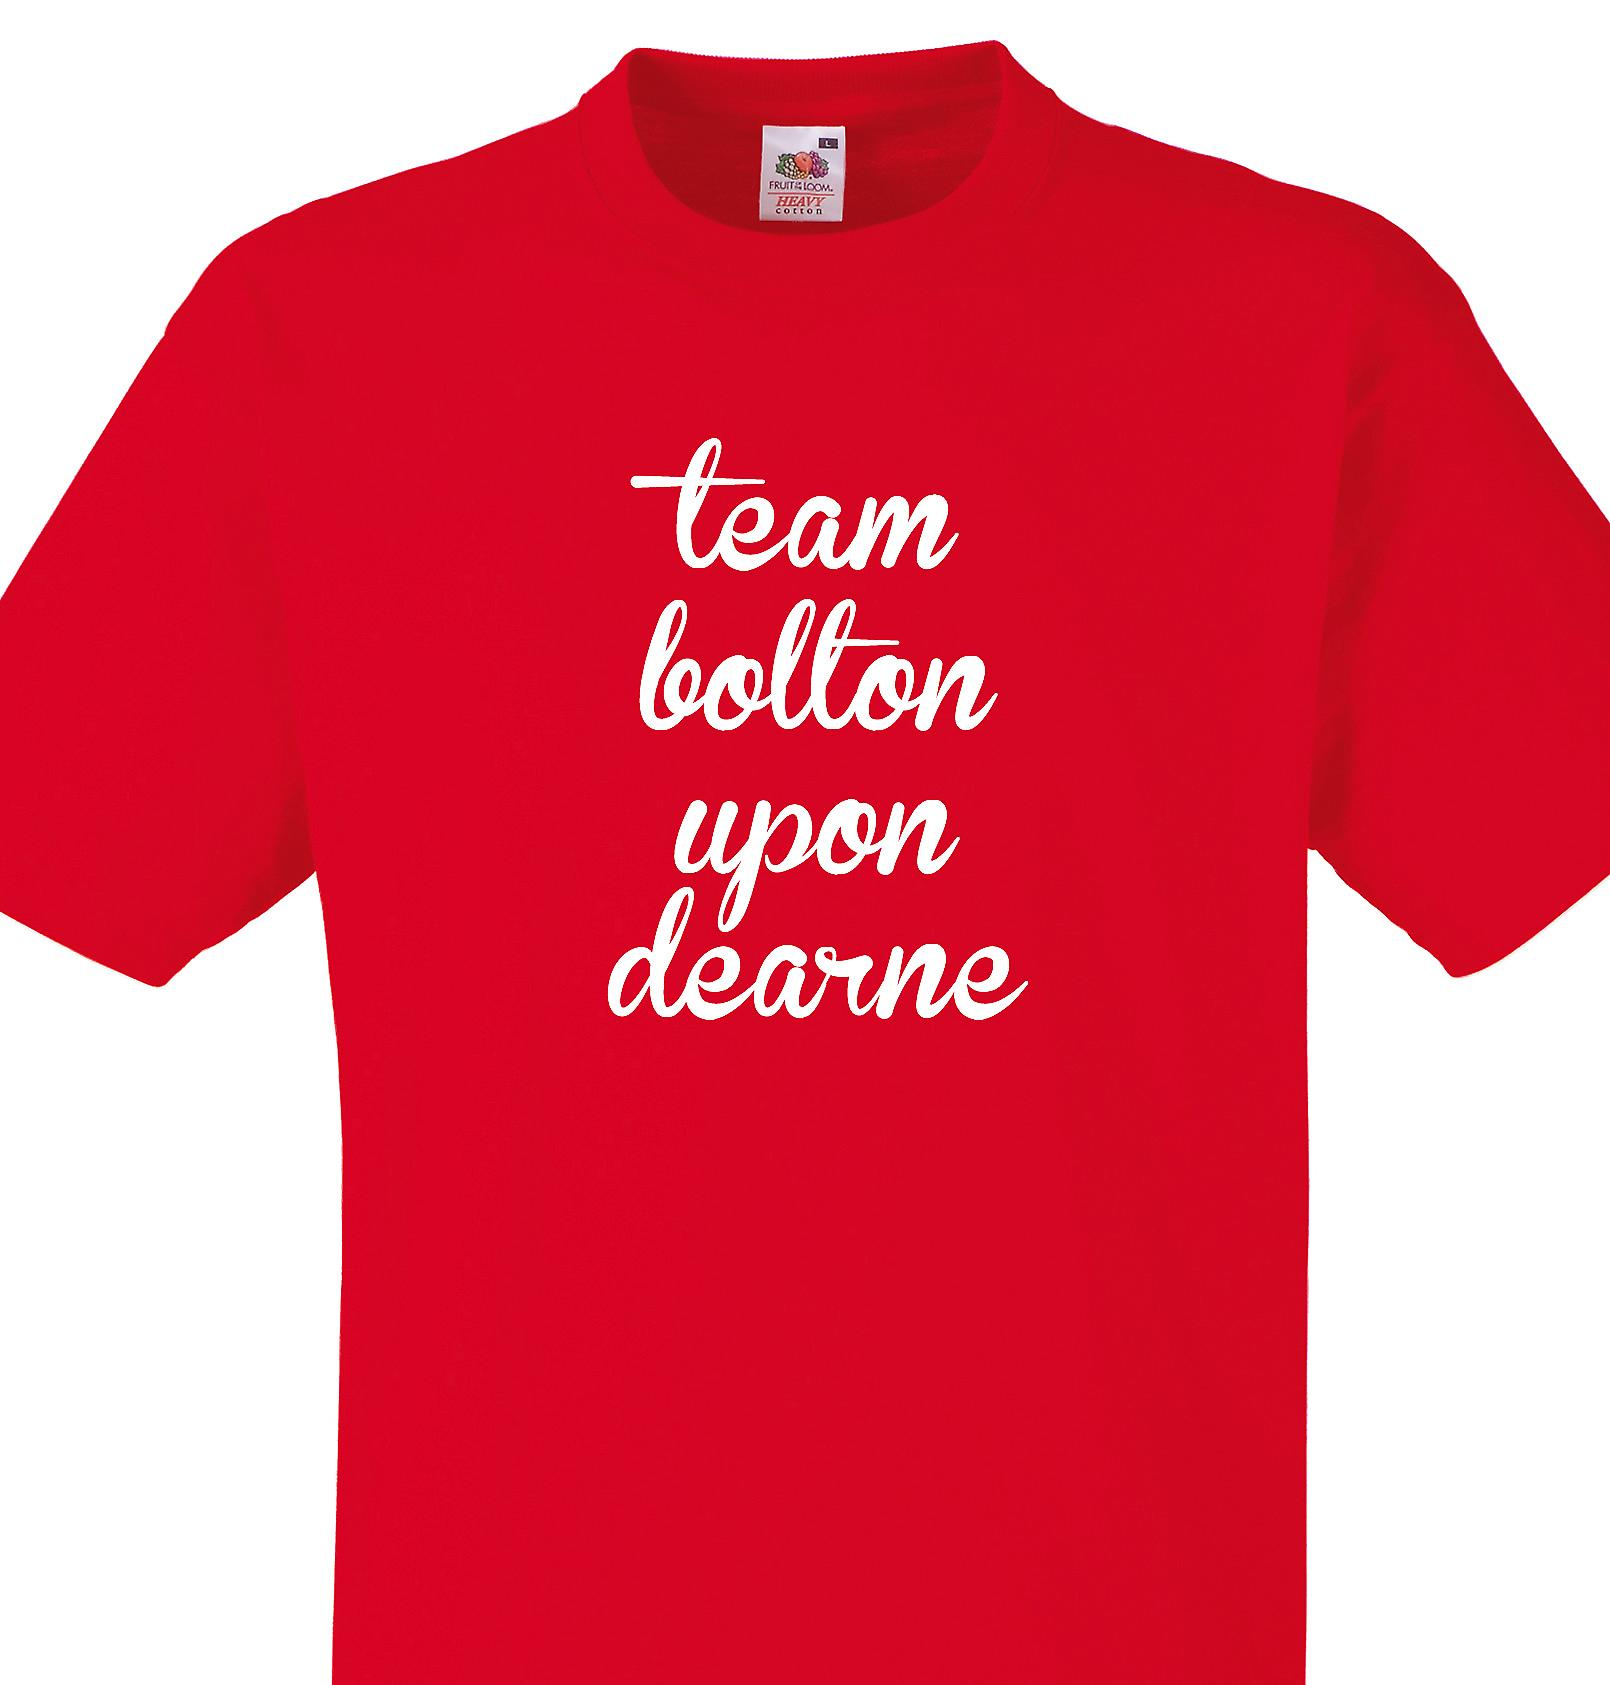 Team Bolton upon dearne Red T shirt